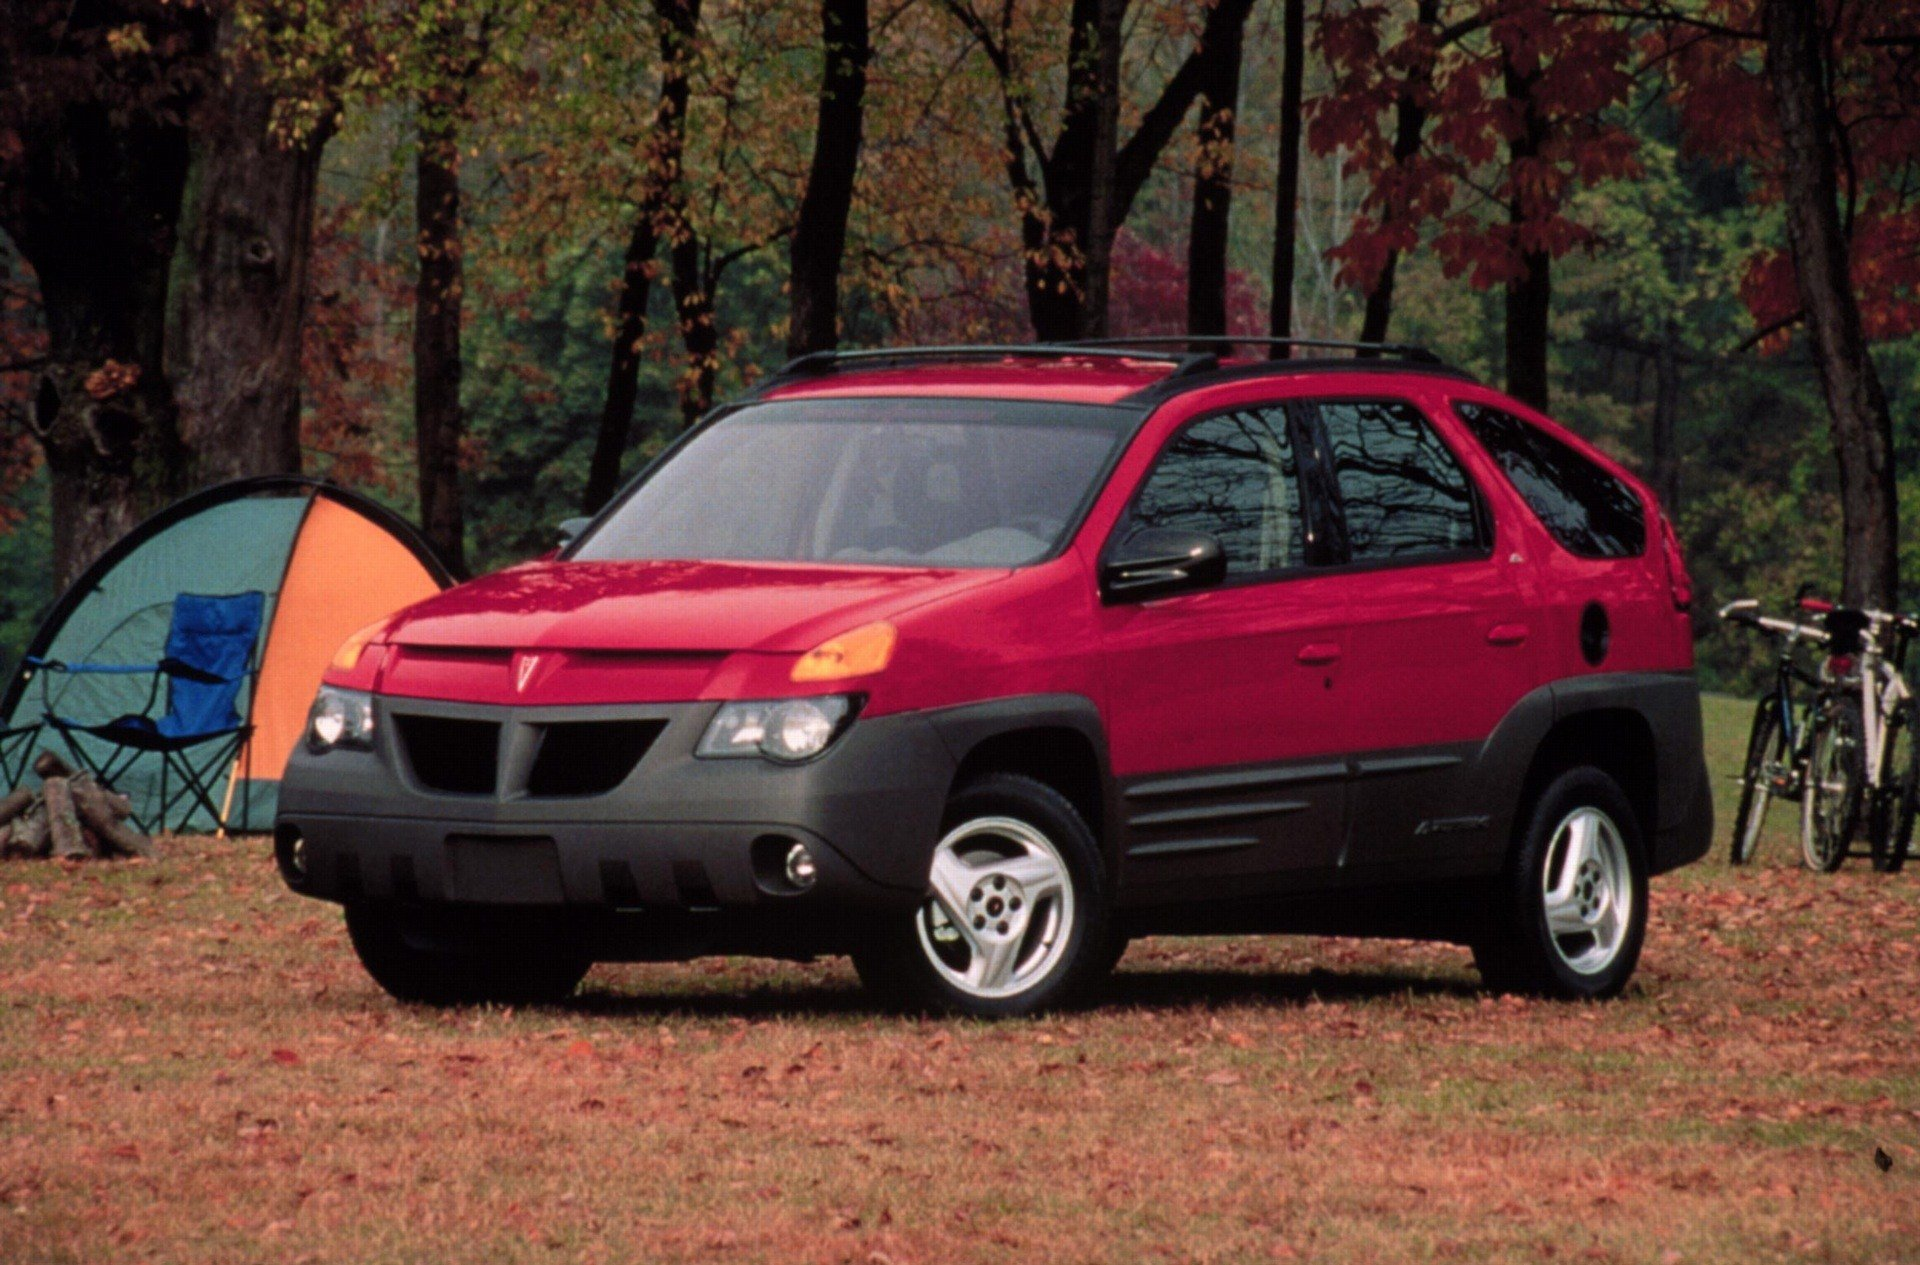 New Photo Of A Car Pontiac Aztec Wallpapers And Images On This Month